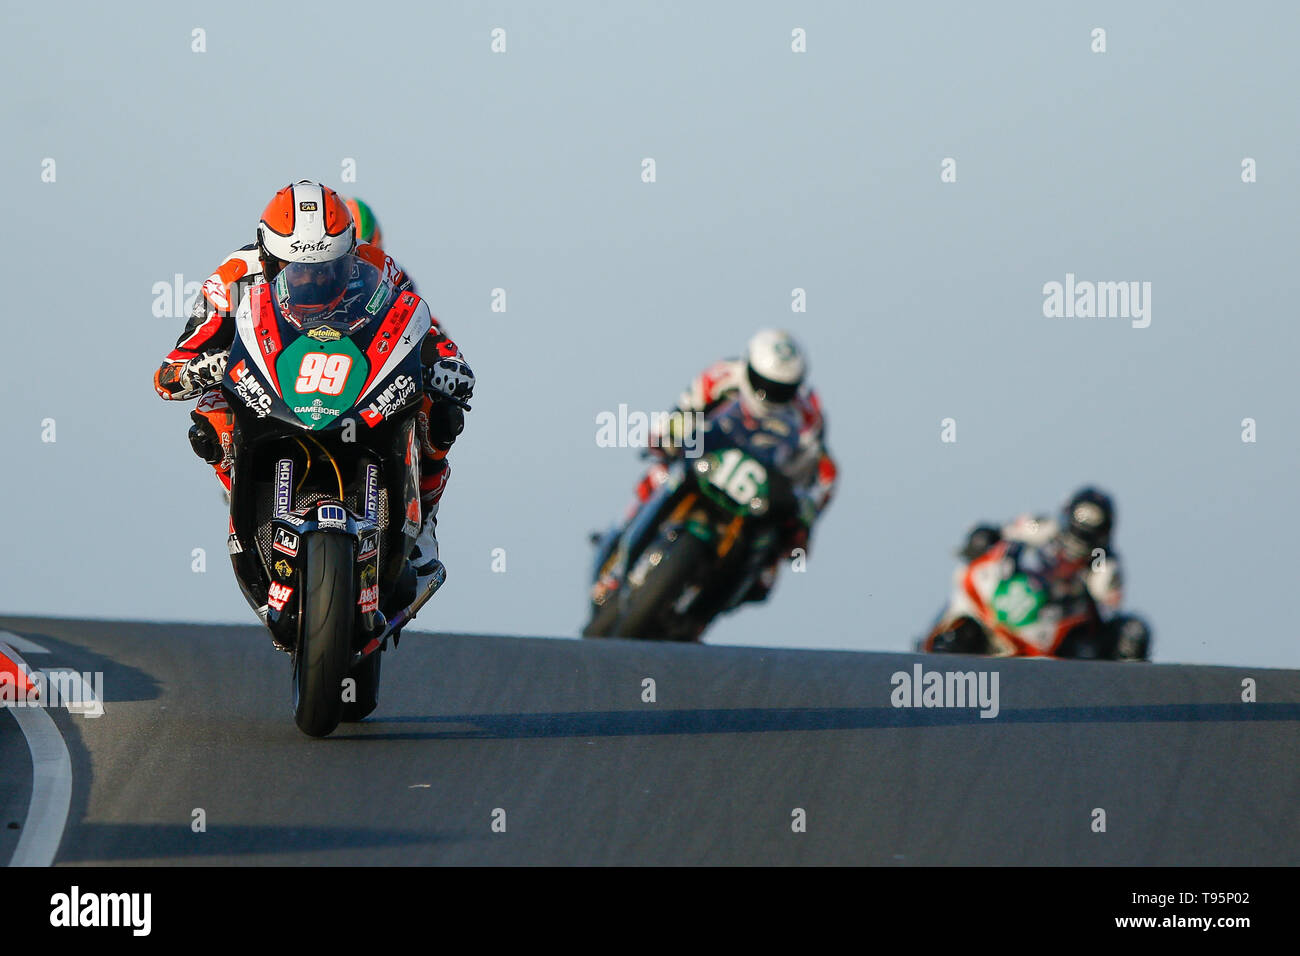 Portrush, Northern Ireland. 16th May, 2019. International North West 200 Motorcycle road racing, Thursday practice and evening racing; Jeremy McWilliams (KMR Kawasaki) was leading before falling on the 2nd lap Credit: Action Plus Sports/Alamy Live News - Stock Image